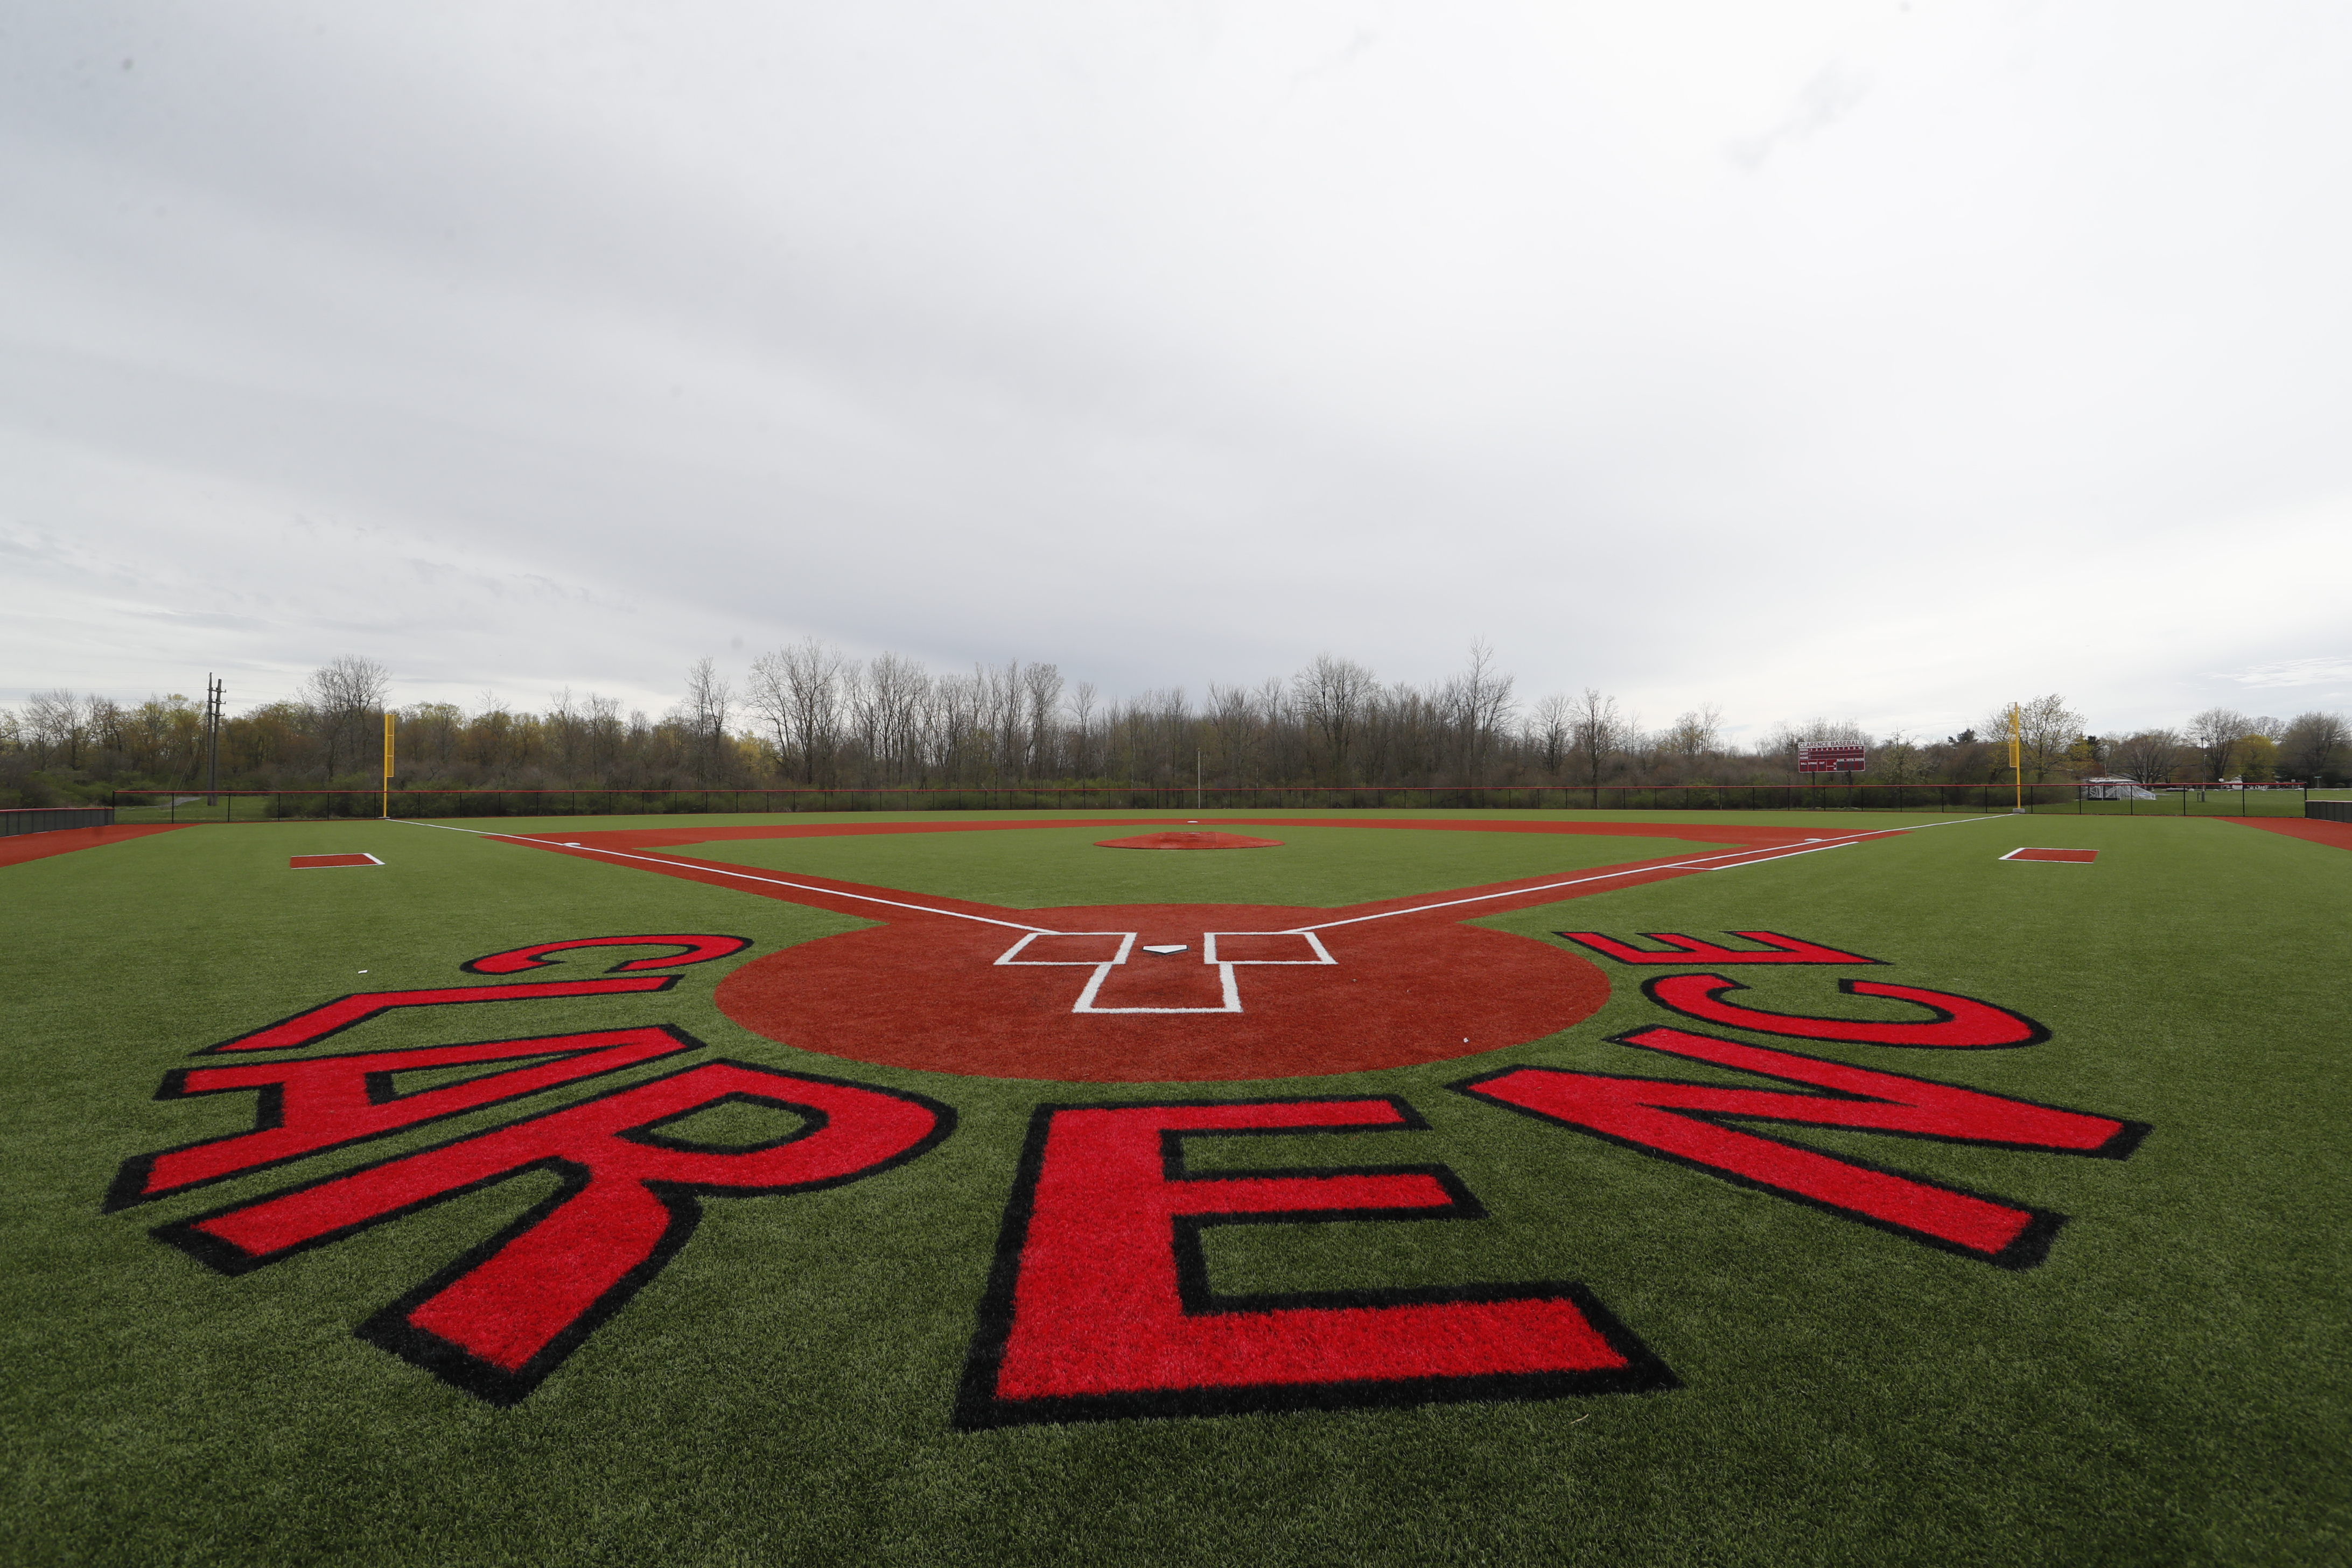 Athletic upgrades have been made to the baseball field at Clarence High School, pictured on Tuesday, April 25, 2017. (Harry Scull Jr./Buffalo News)